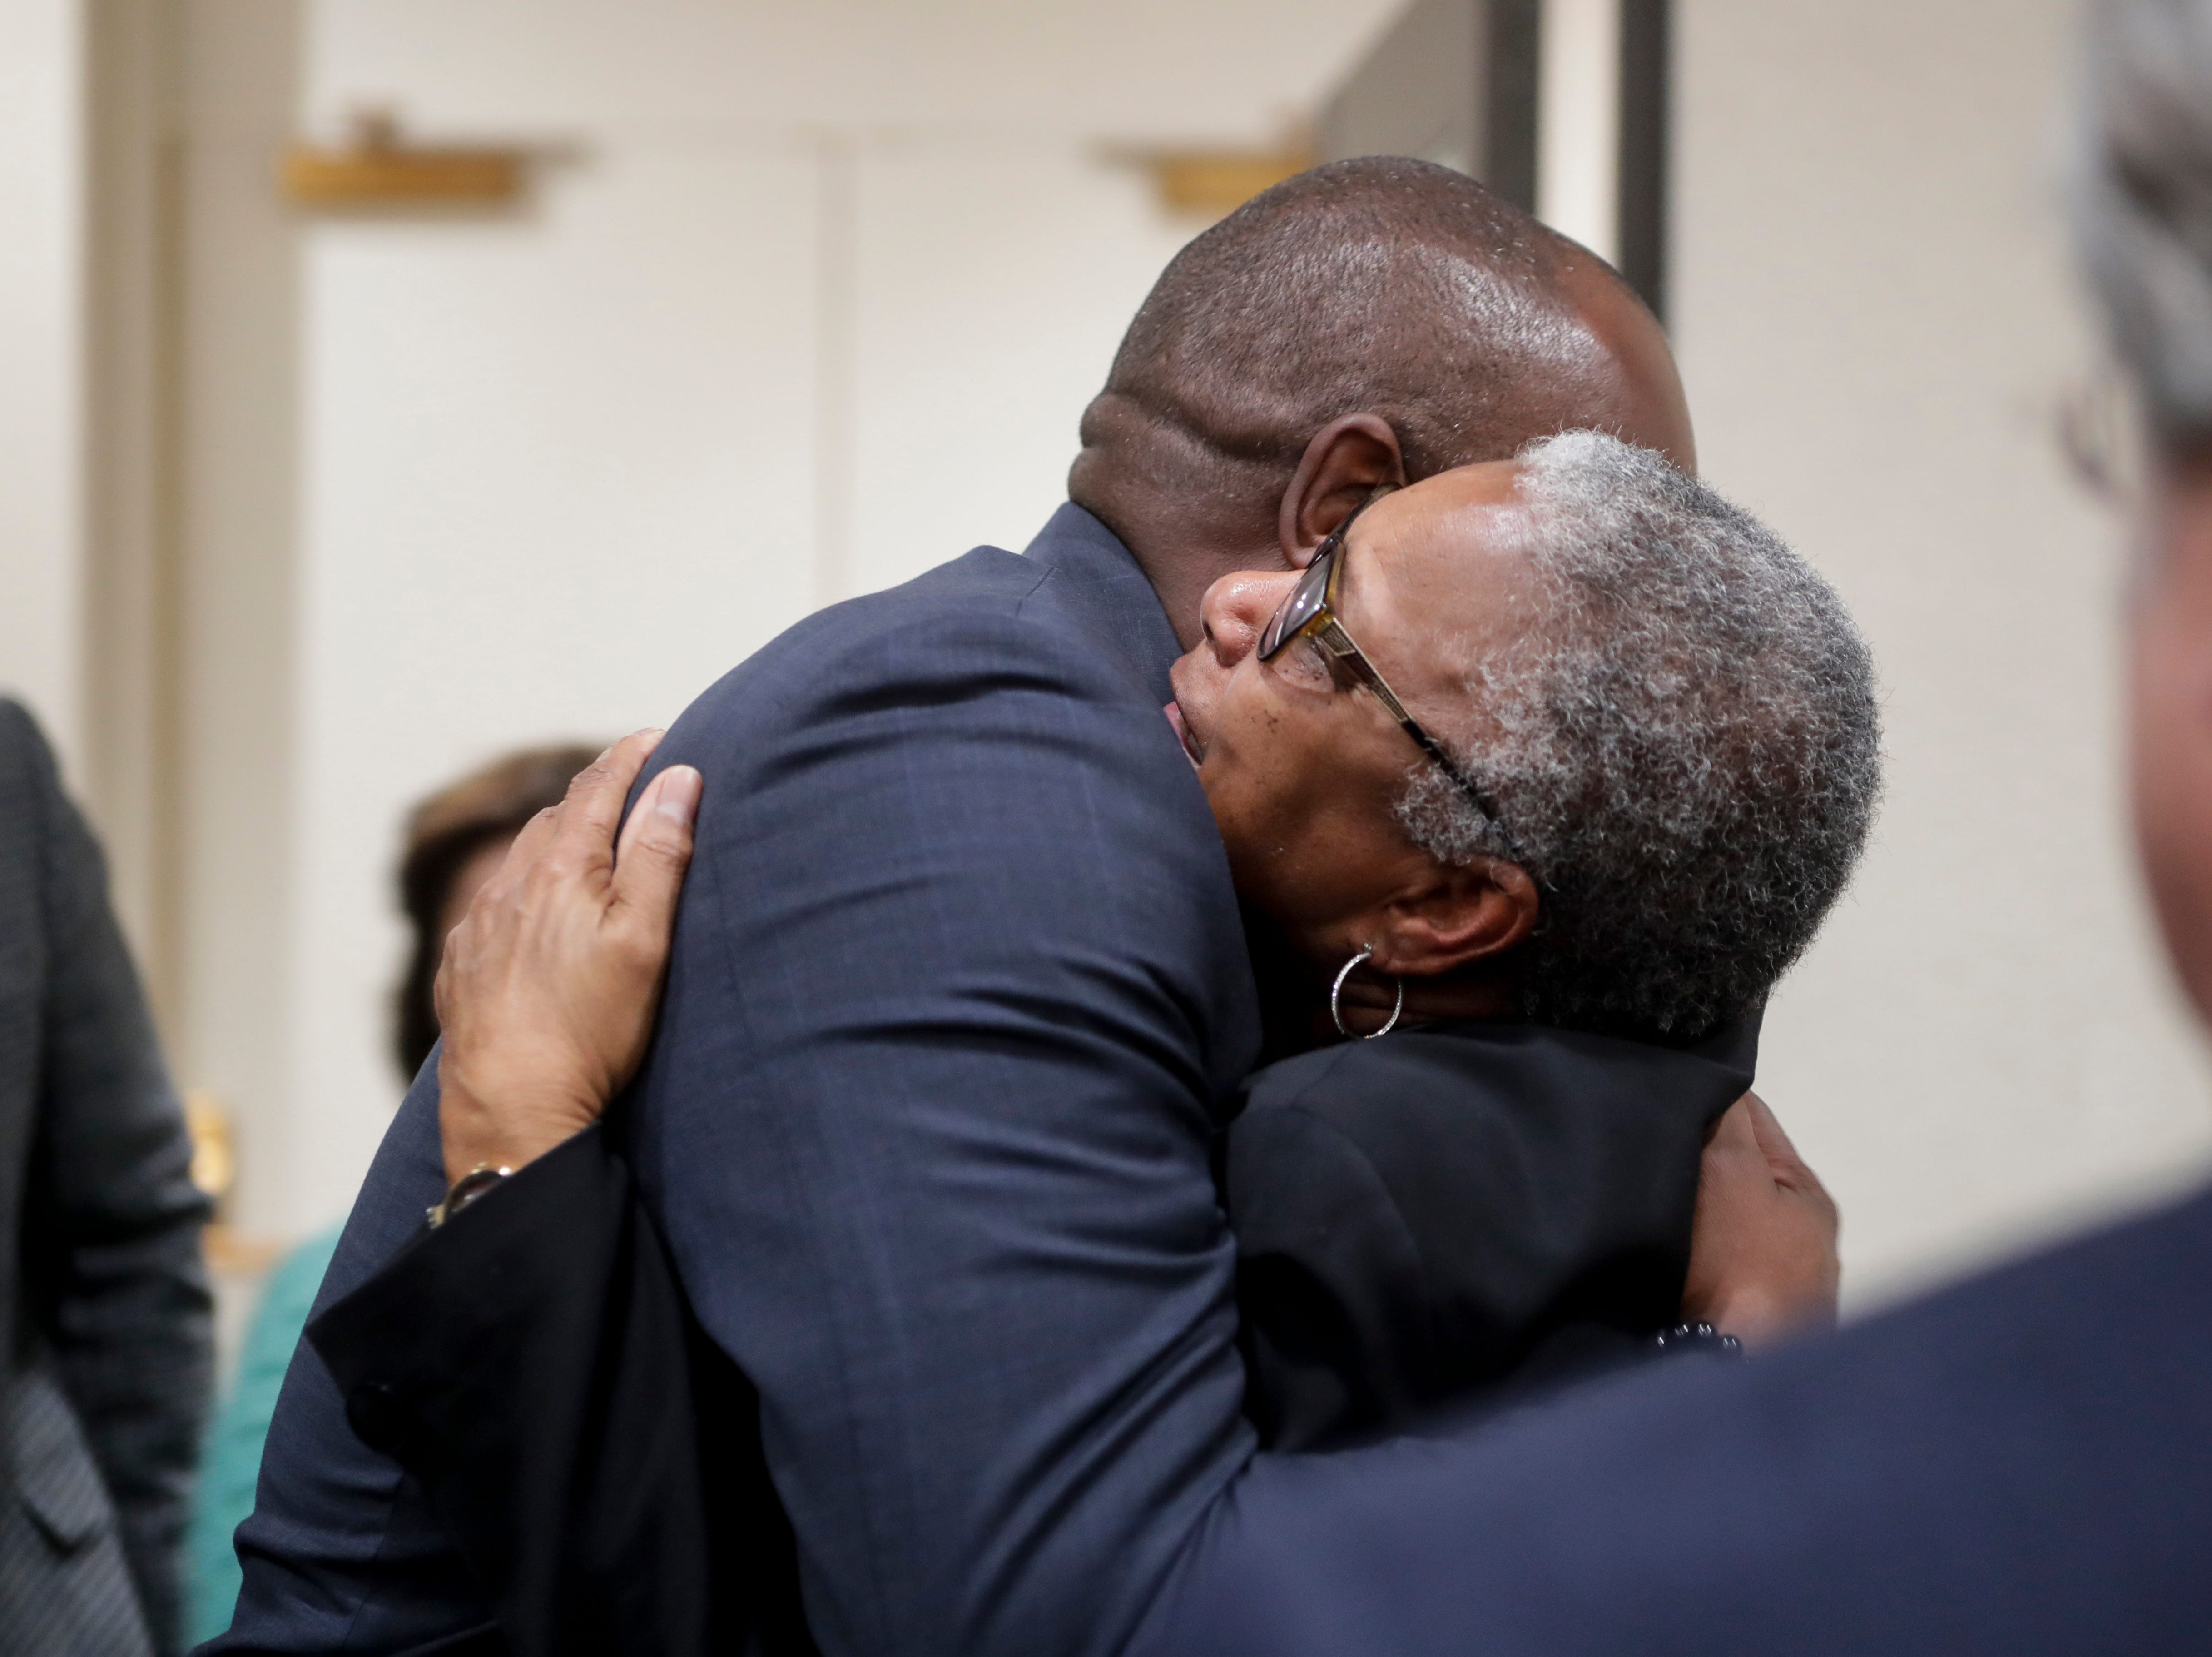 Carol (Greenlee) Crawley, daughter of Charles Greenlee, one of the four men in the Groveland Four, hugs Rep. Bobby Dubose, after her father was pardoned by Gov. Ron DeSantis and his cabinet during a clemency board hearing Friday, Jan. 11, 2019.